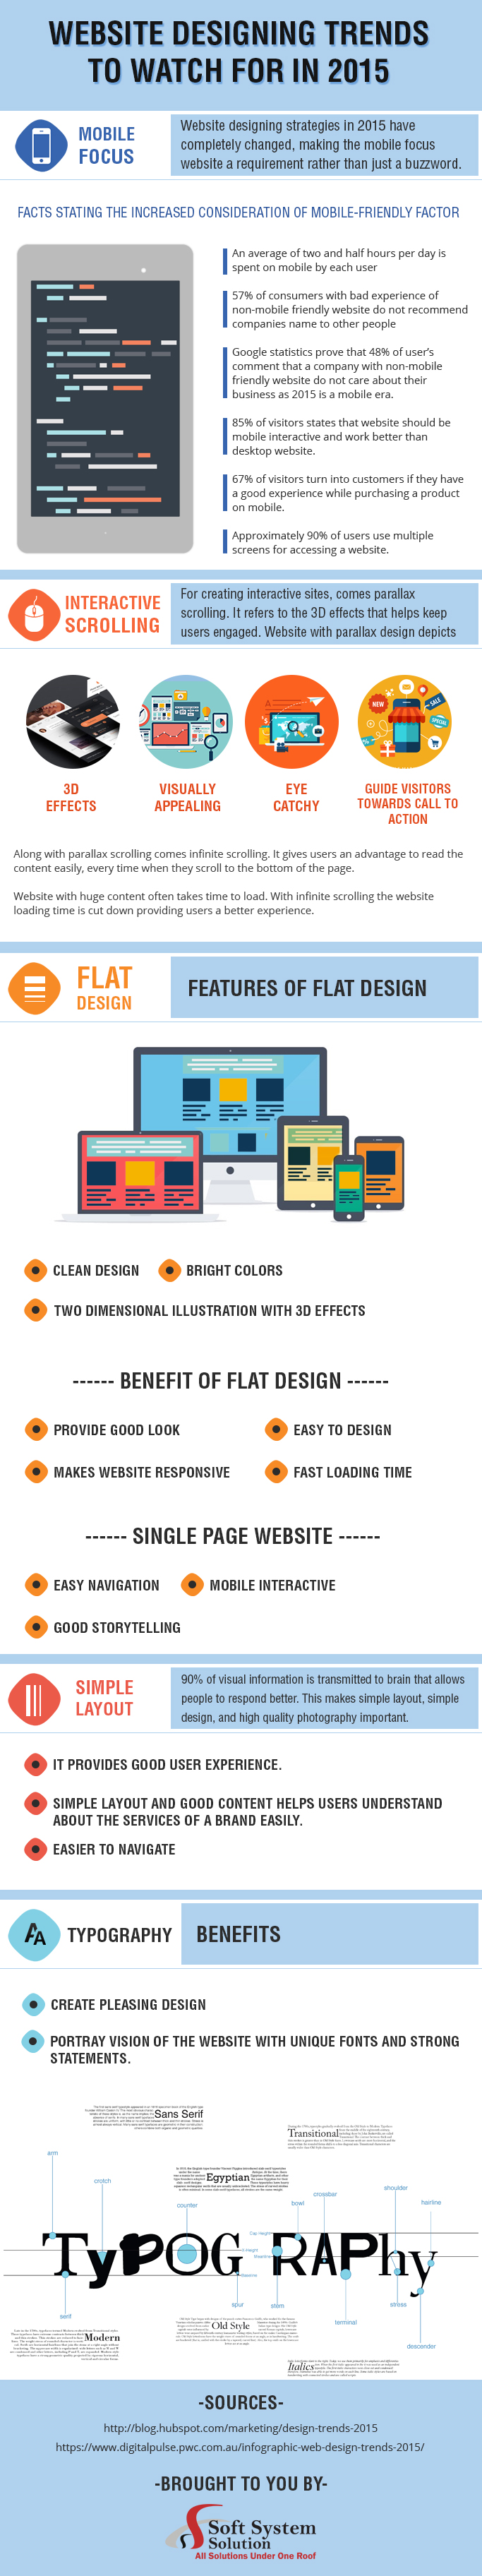 Website-Designing-Trends-to-Watch-For-in-2015